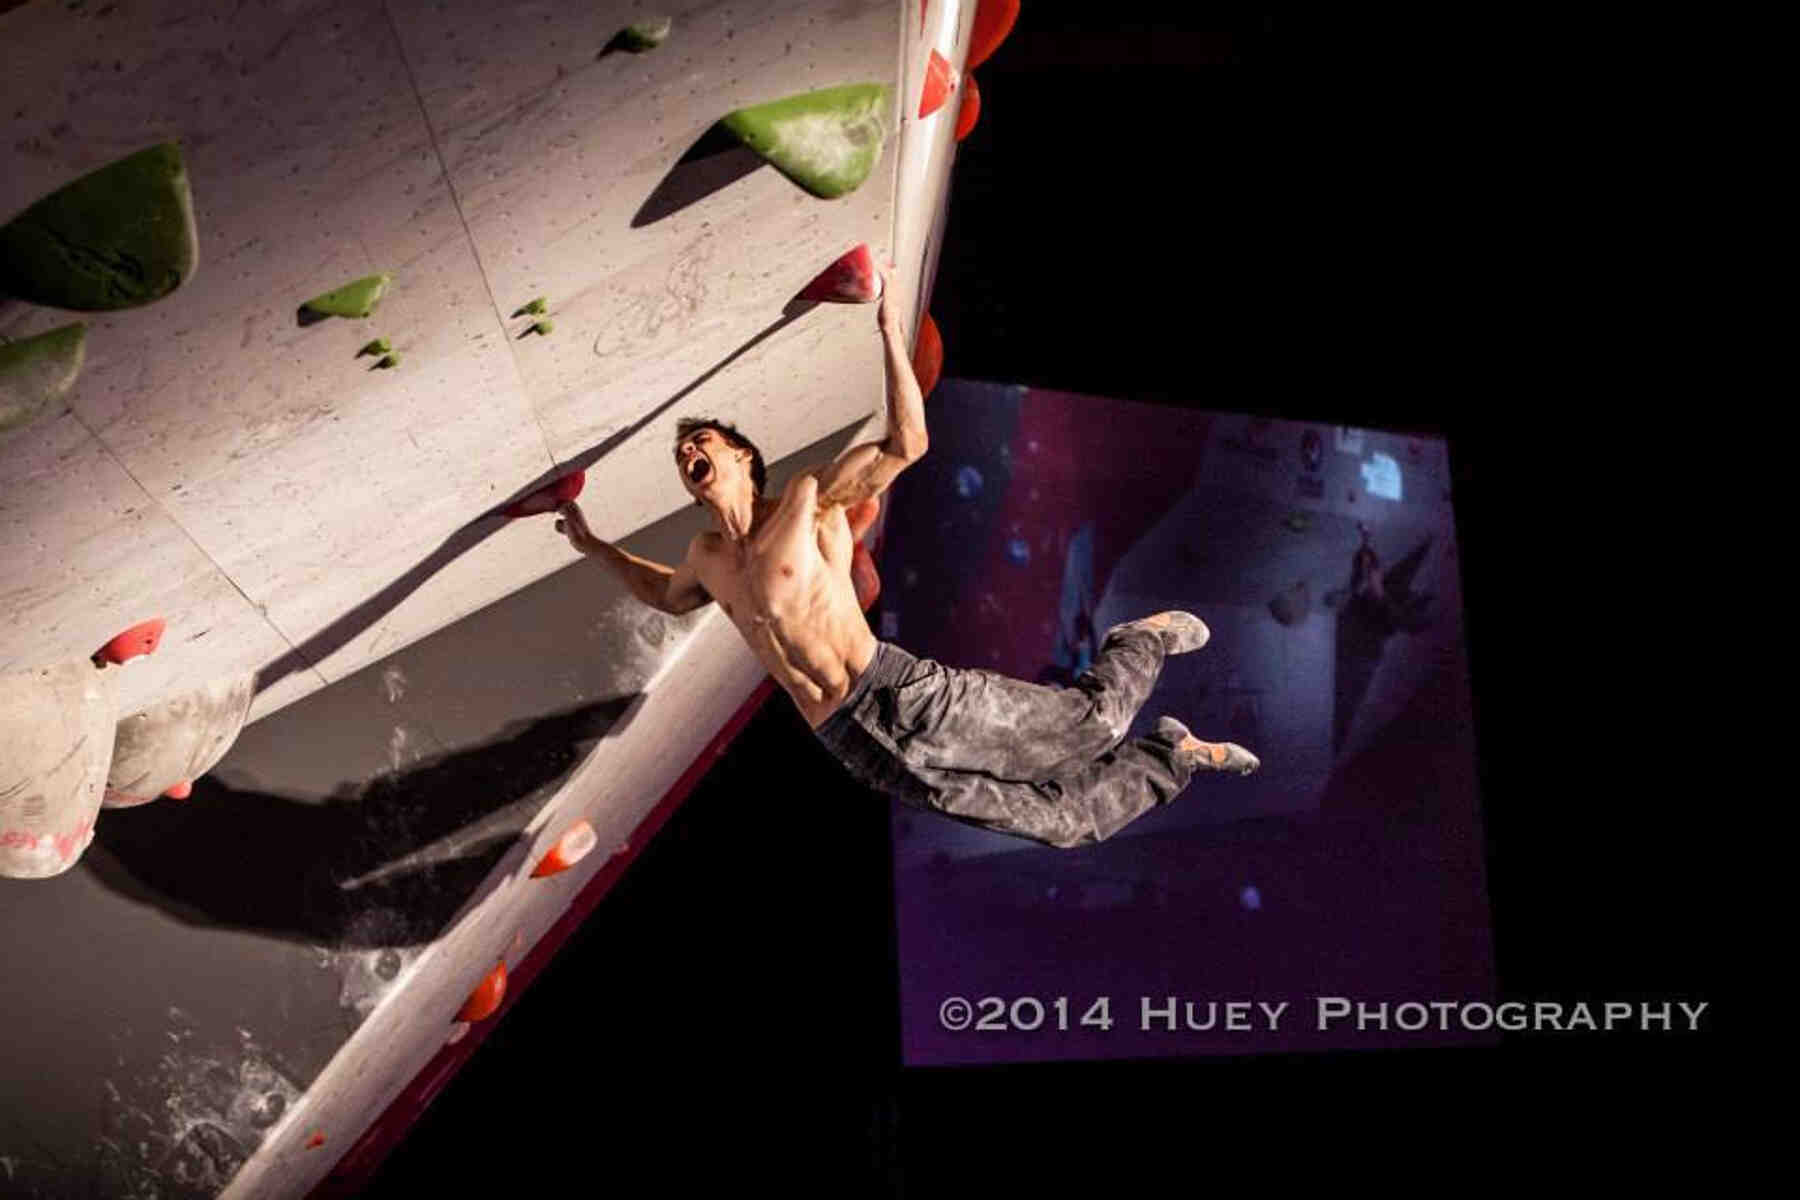 Michael O'Rourke - FrictionLabs Rock Climbing Chalk Pro Athlete - 2014 photo credit Huey Photography